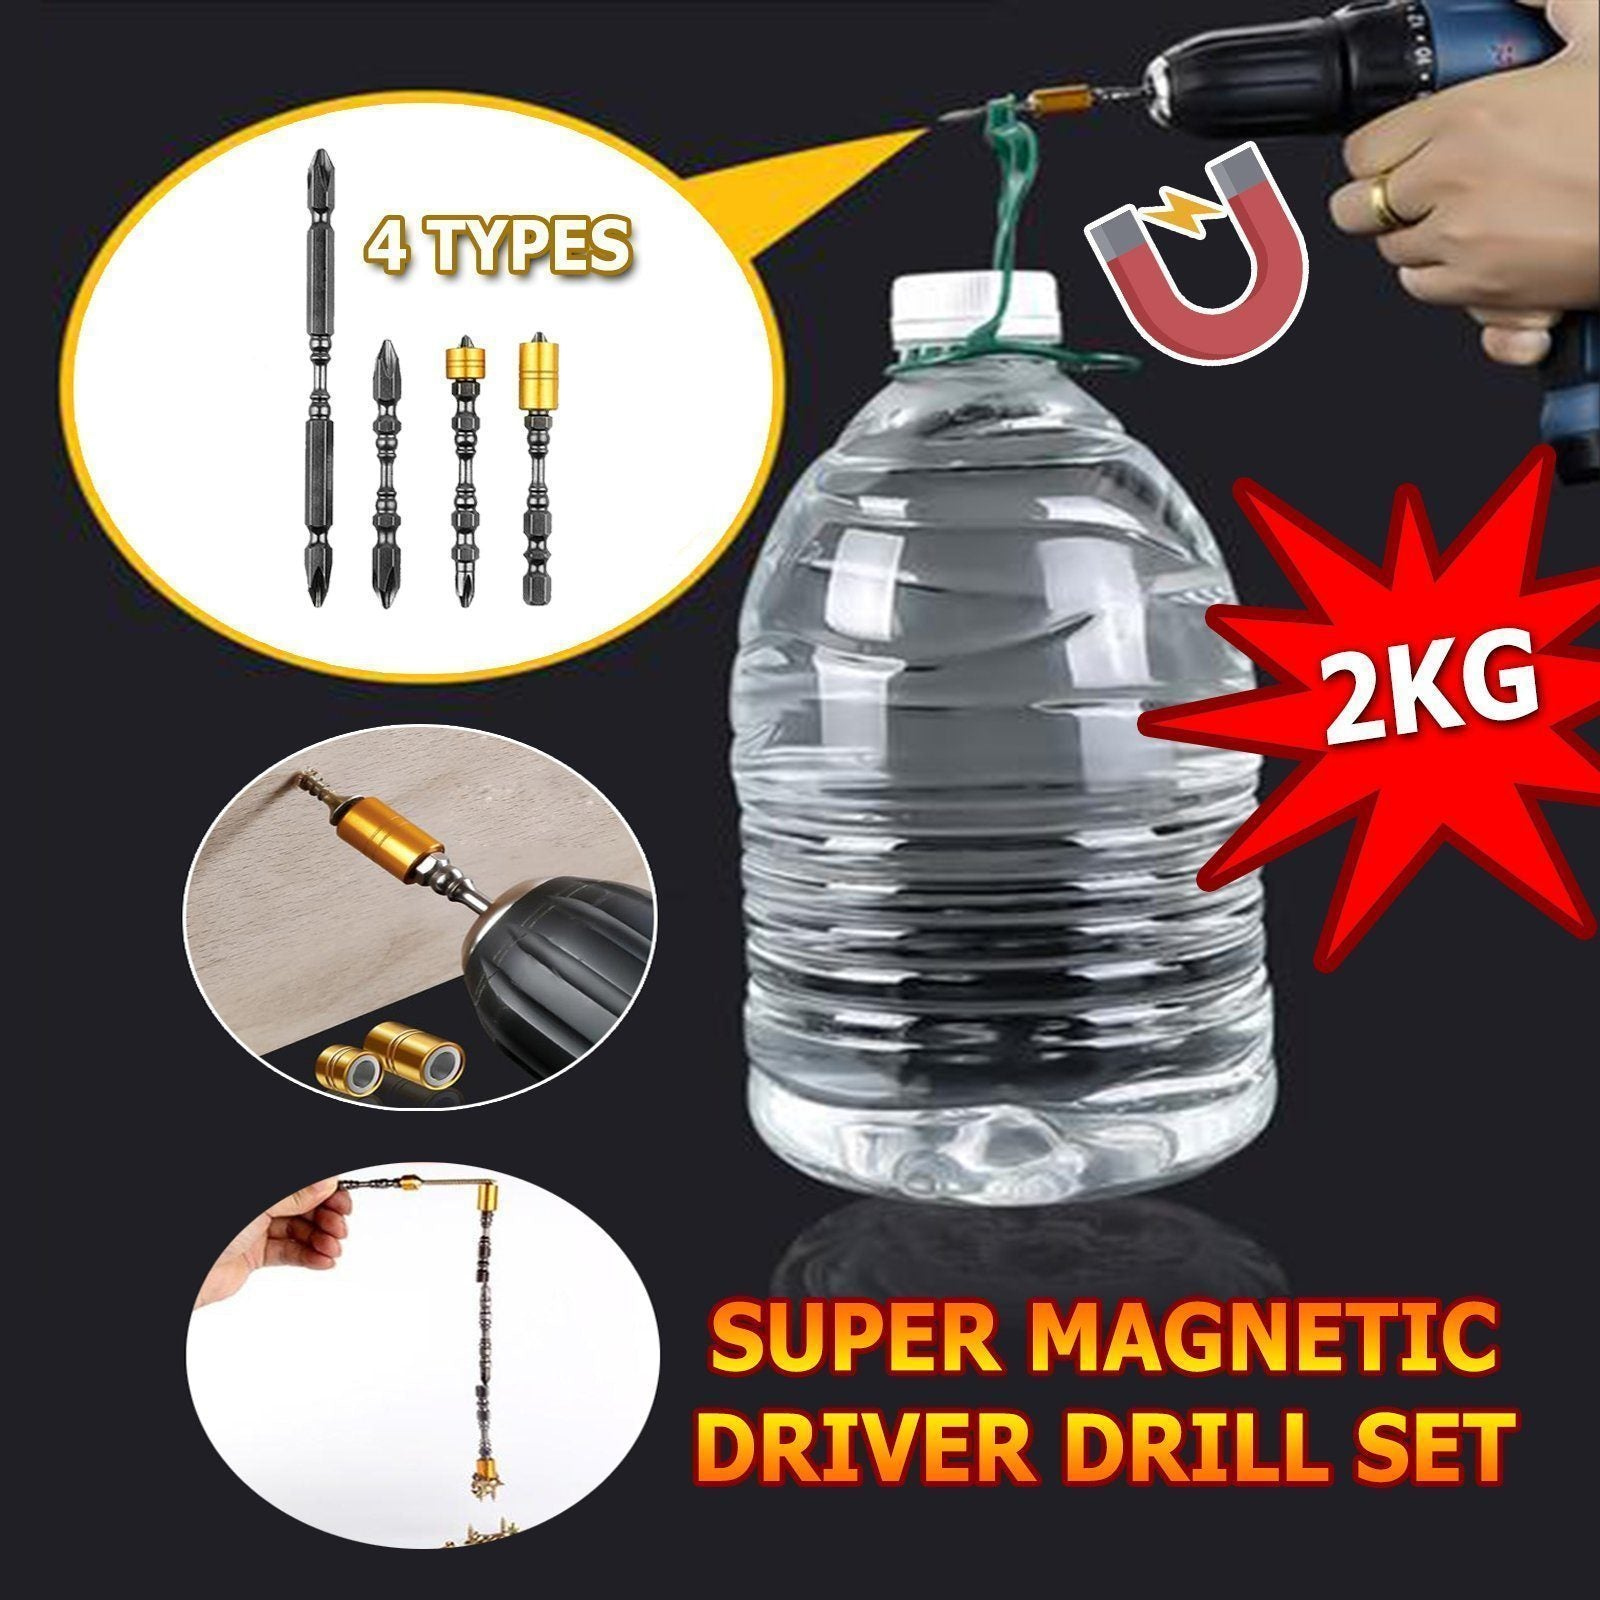 🔥50% OFF🔥Super Magnetic Driver Drill Set